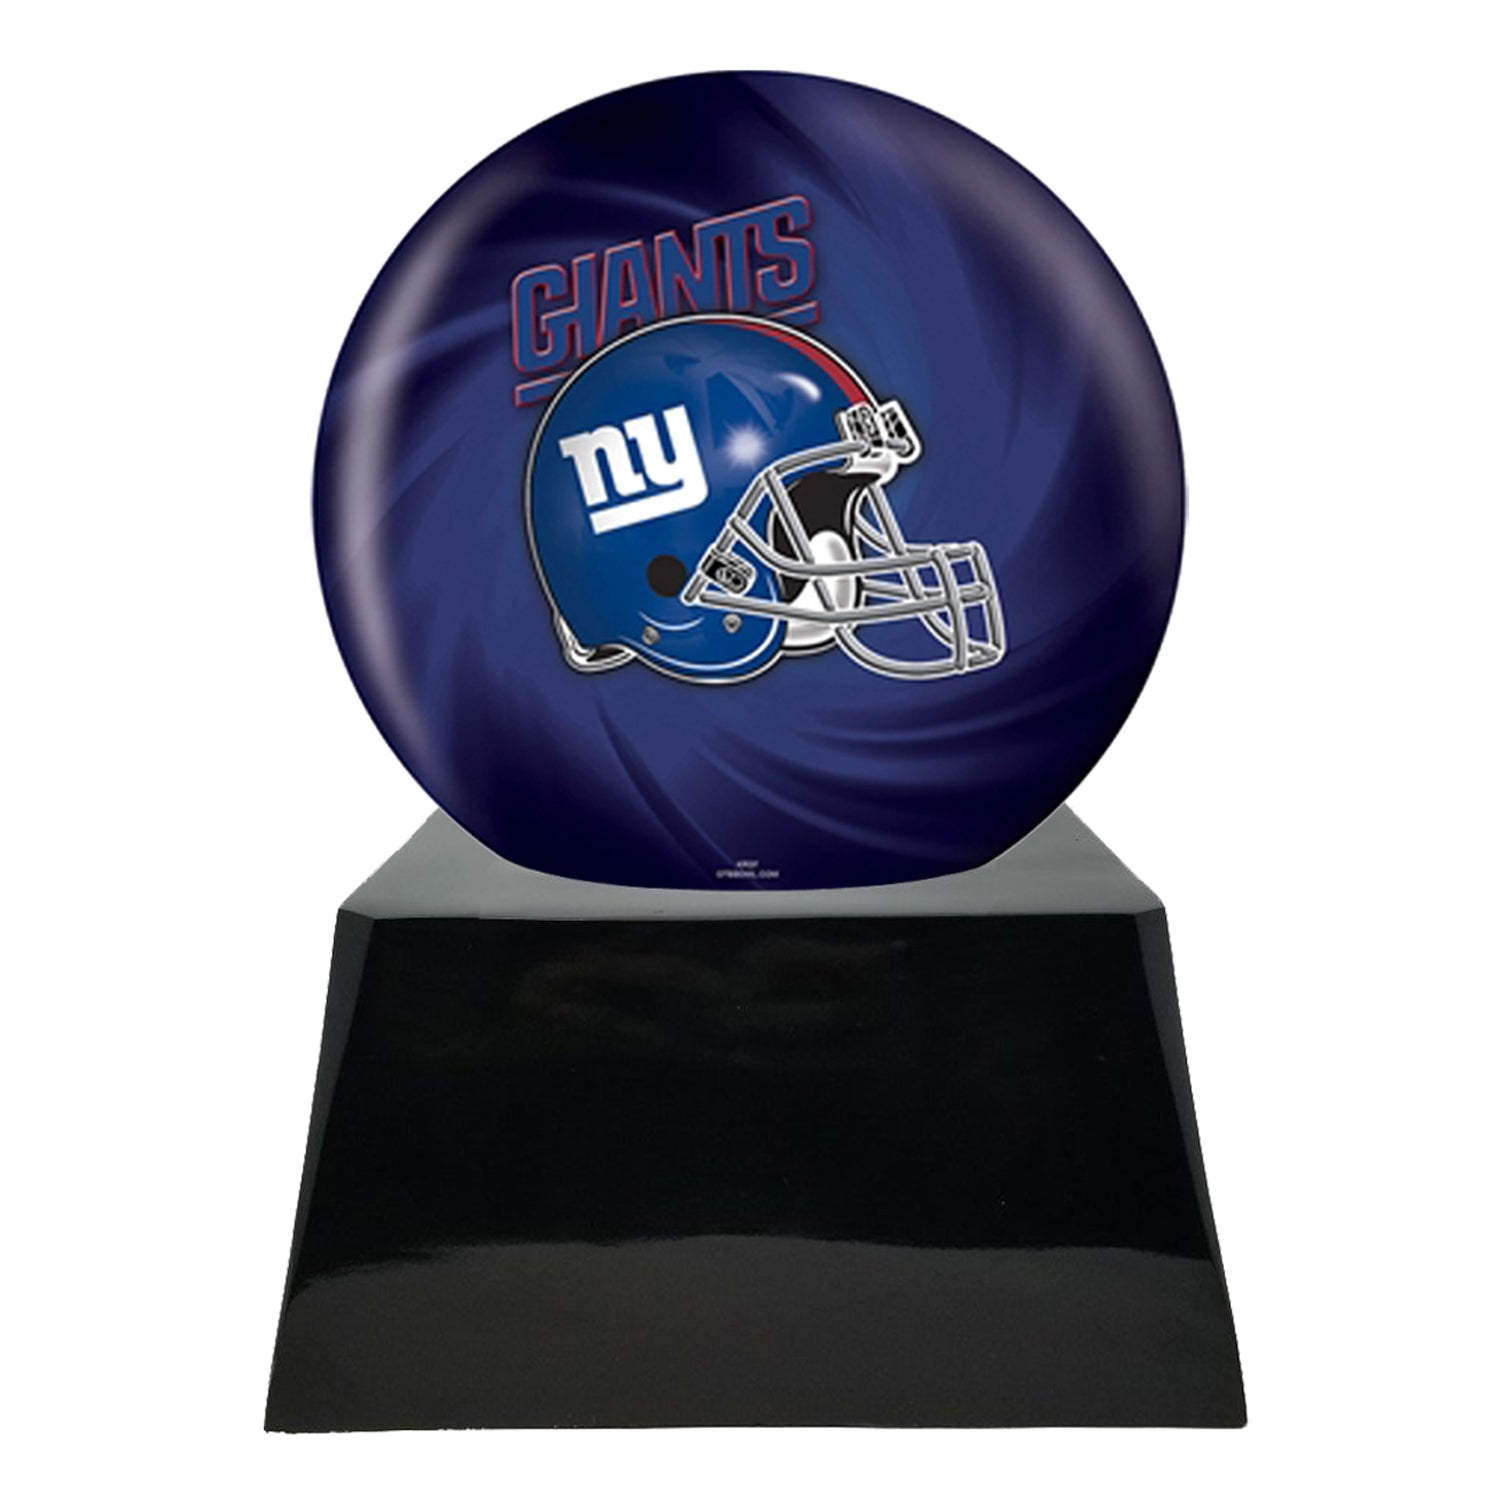 Football Cremation Urn and New York Giants Ball Decor with Custom Metal Plaque